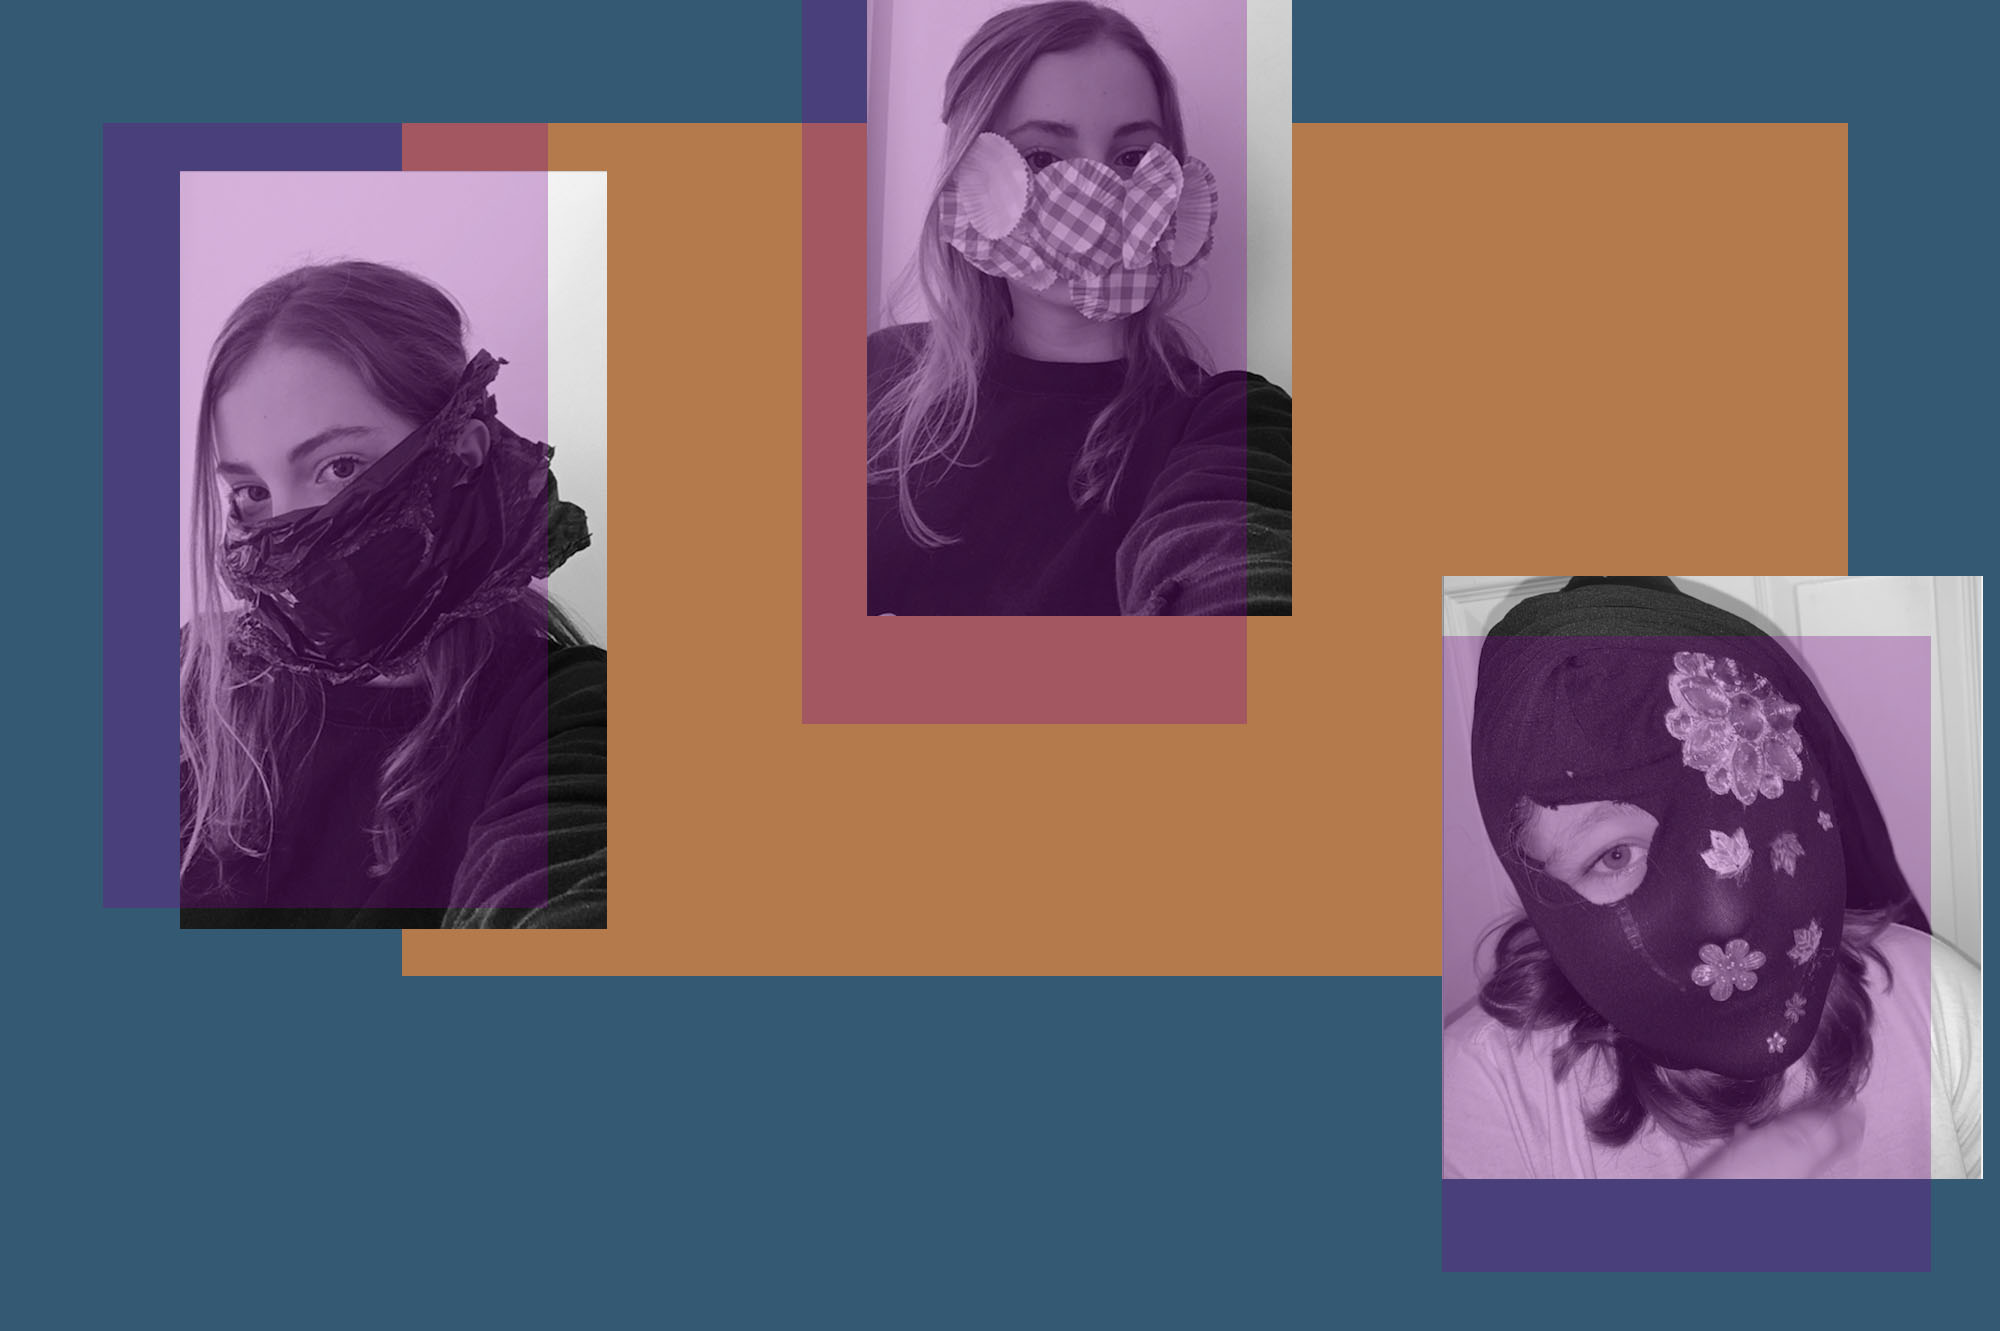 Montage of photos showing students experimenting with making their own masks